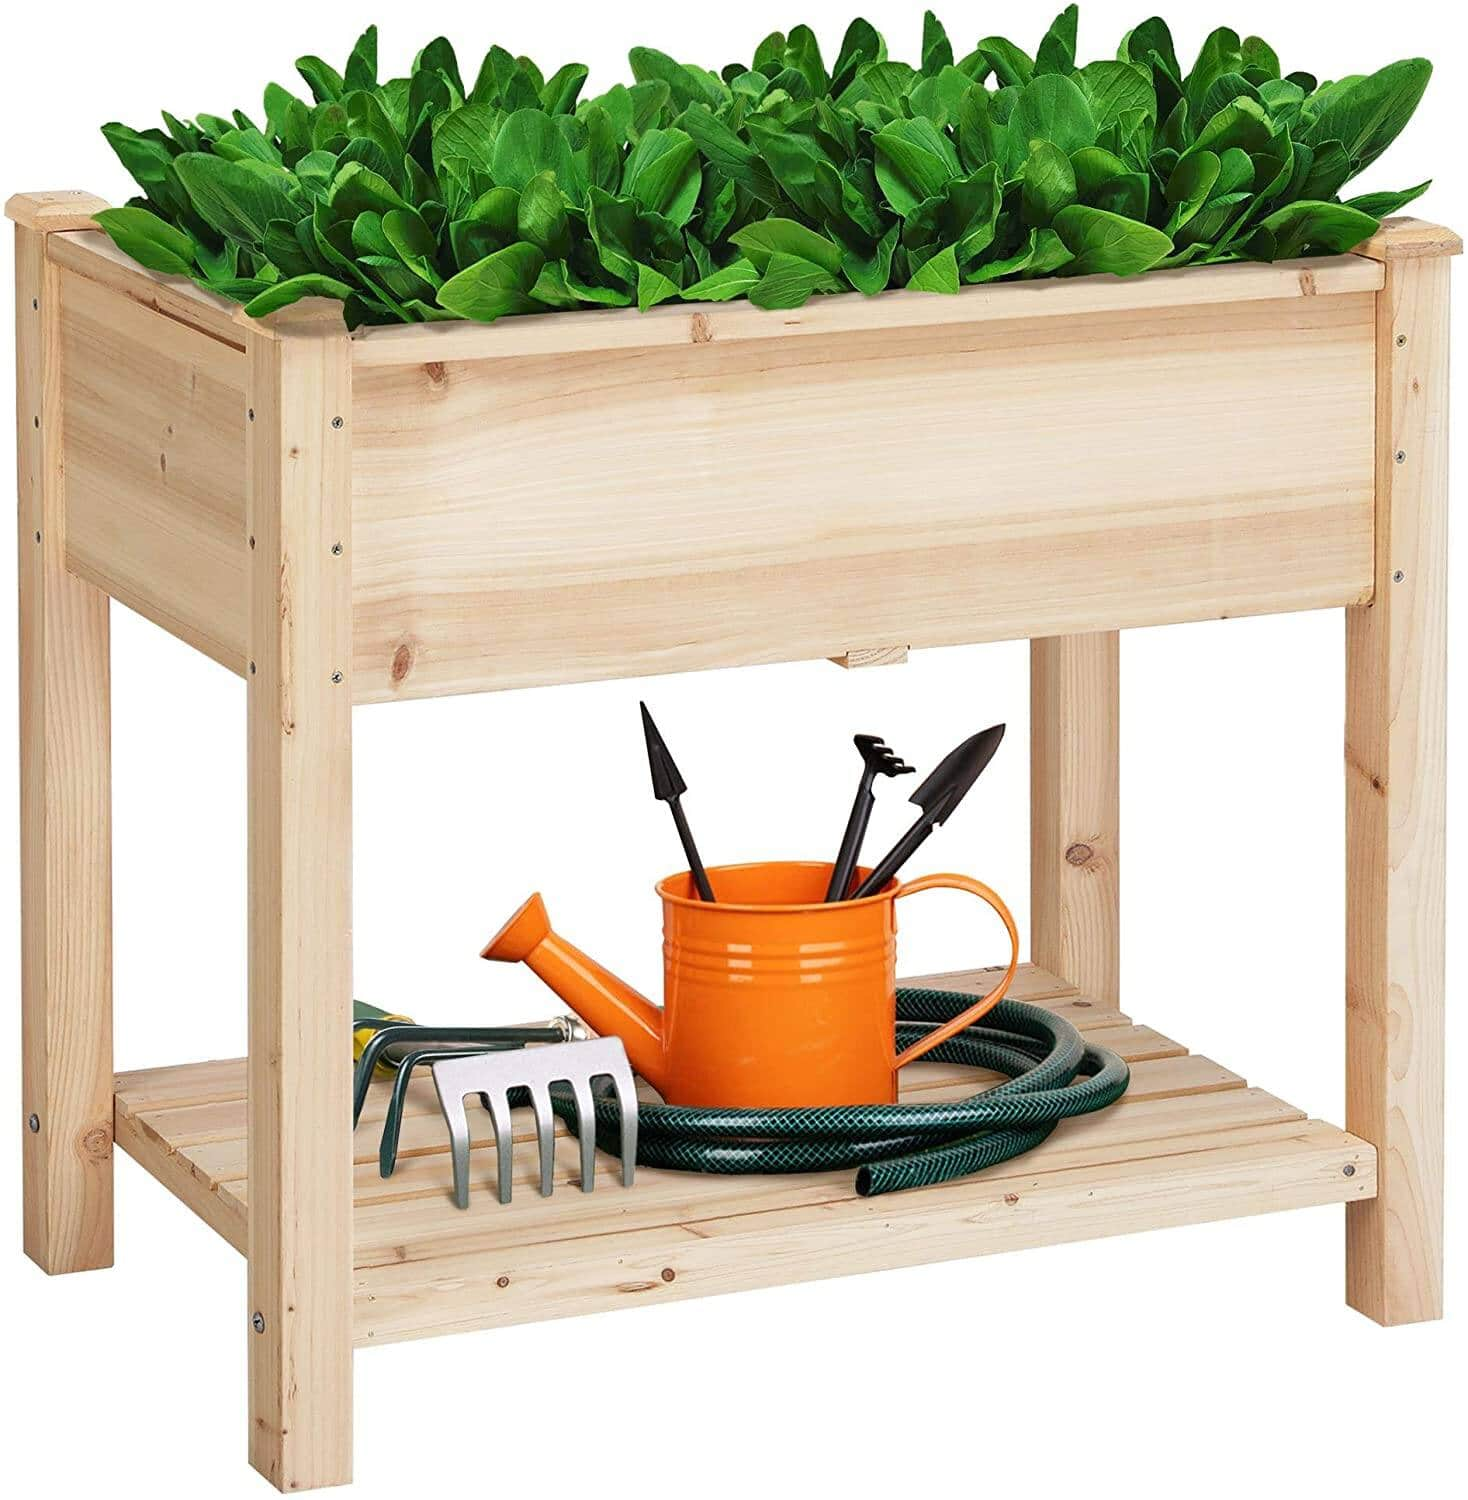 Yaheetech Wooden Raised Elevated Garden Bed Kit with Legs Planter Flower Herb Boxes $69.99 + Free Shipping